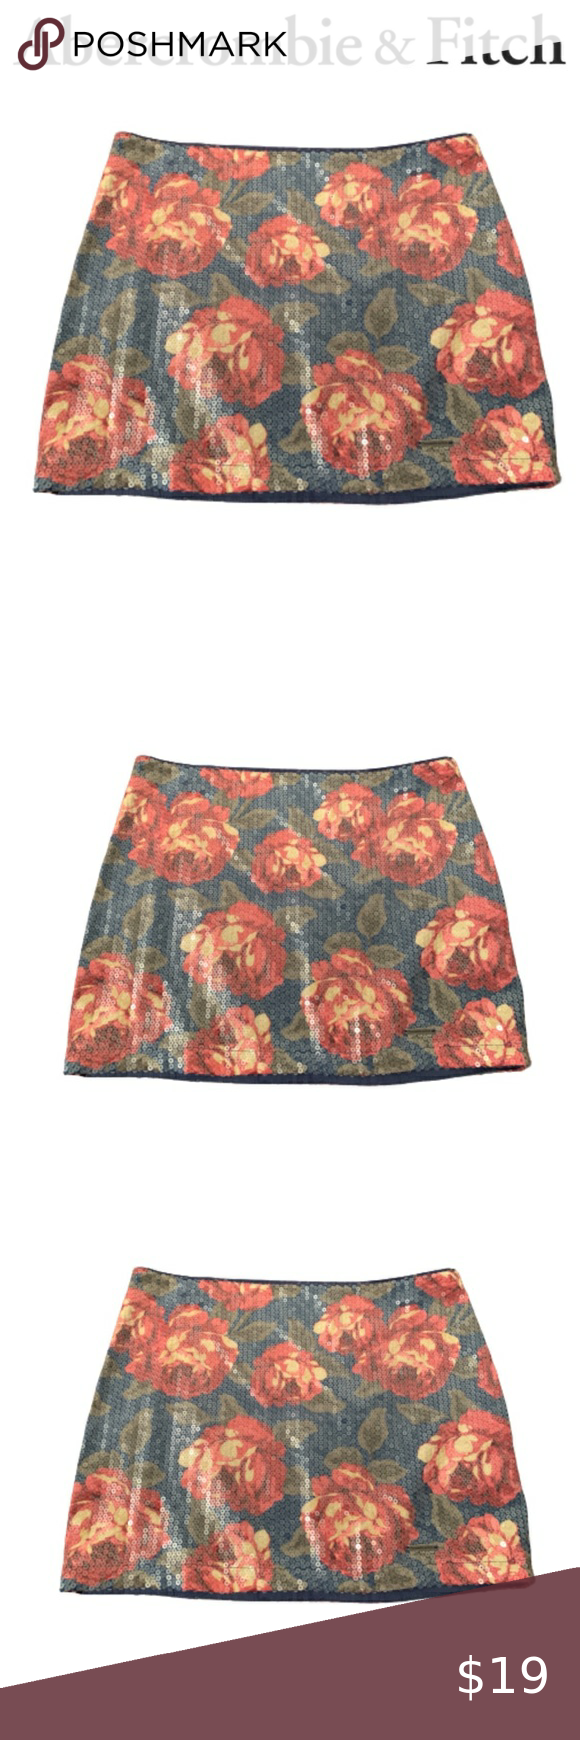 Women's Sequin Floral Mini Skirt Check out this li